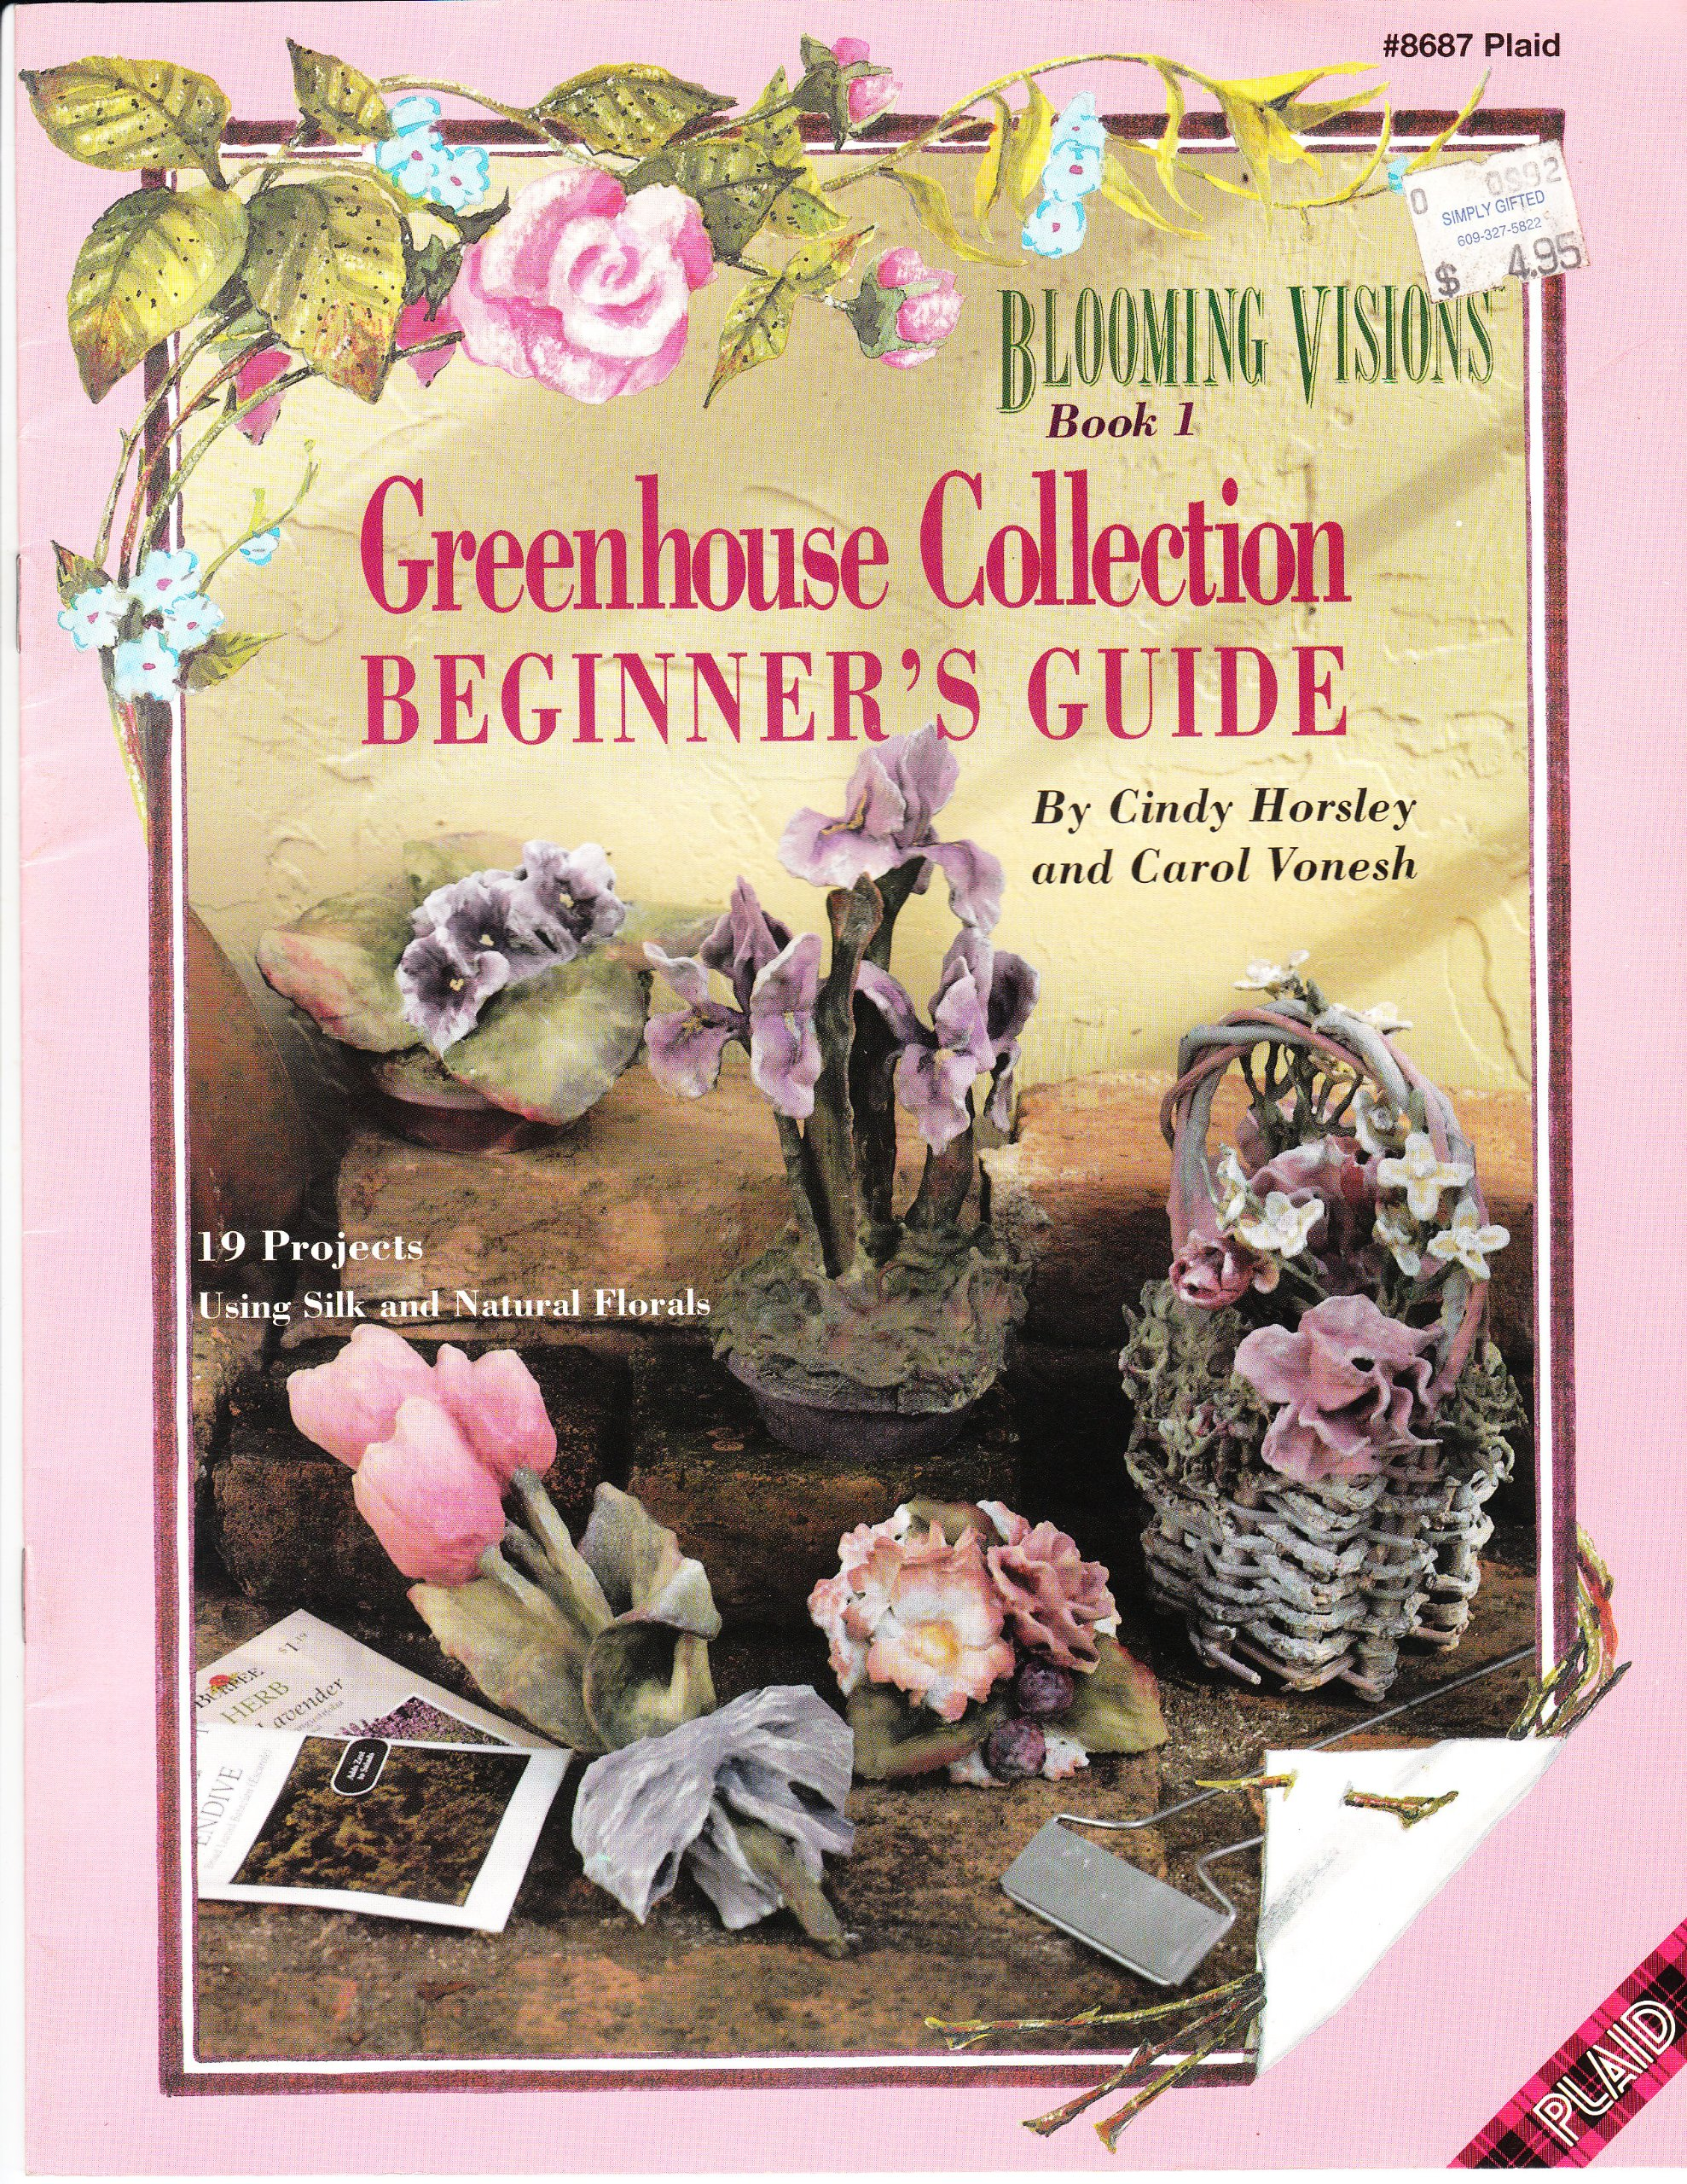 Blooming Visions Book 1: Greenhouse Collection Beginner's Guide